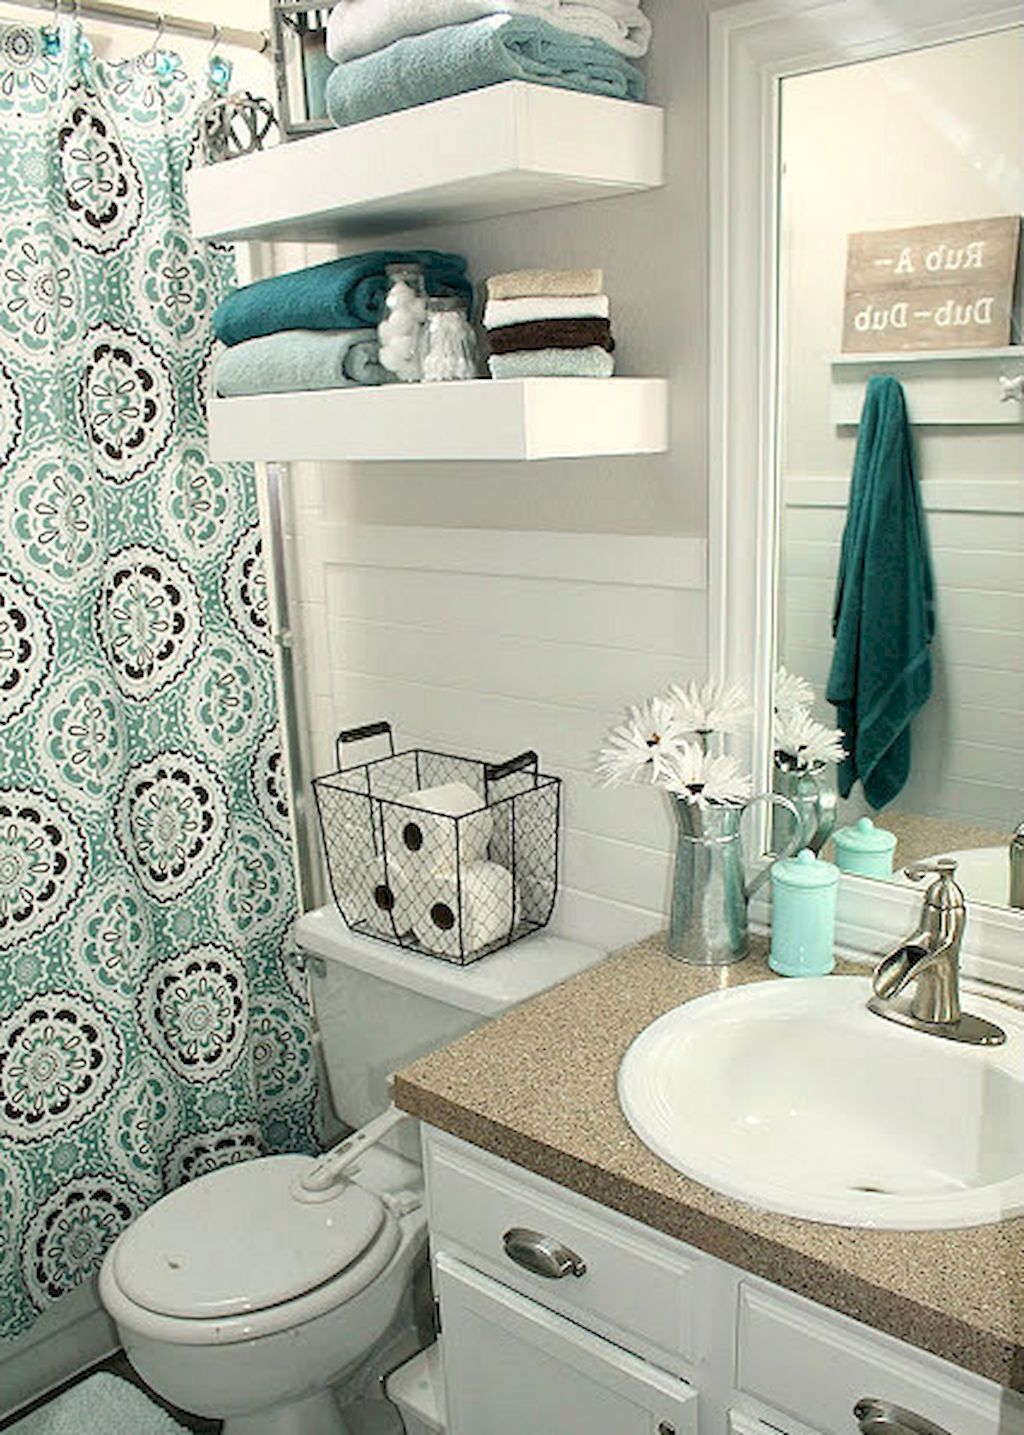 How To Decorate A Small Apartment Bathroom Pin By Jennifer Tinsley On Happy Homes First Apartment